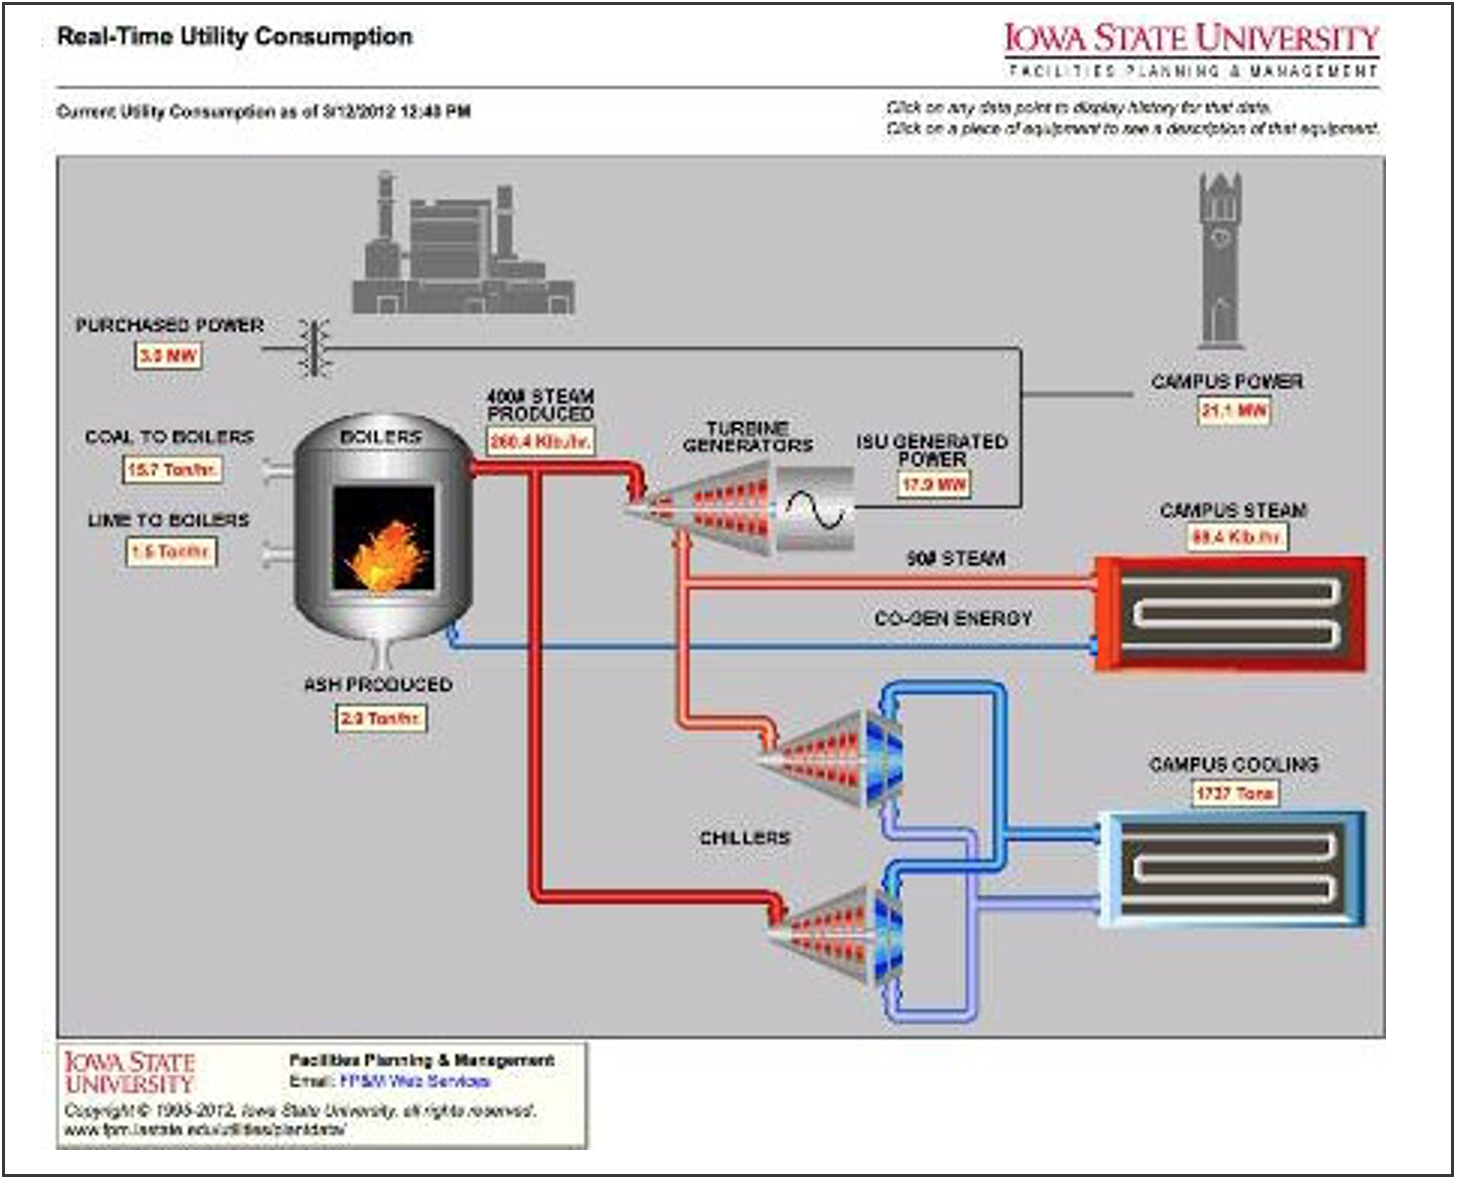 Diagram: Real-Time Consumption/Iowa State University Cogen System